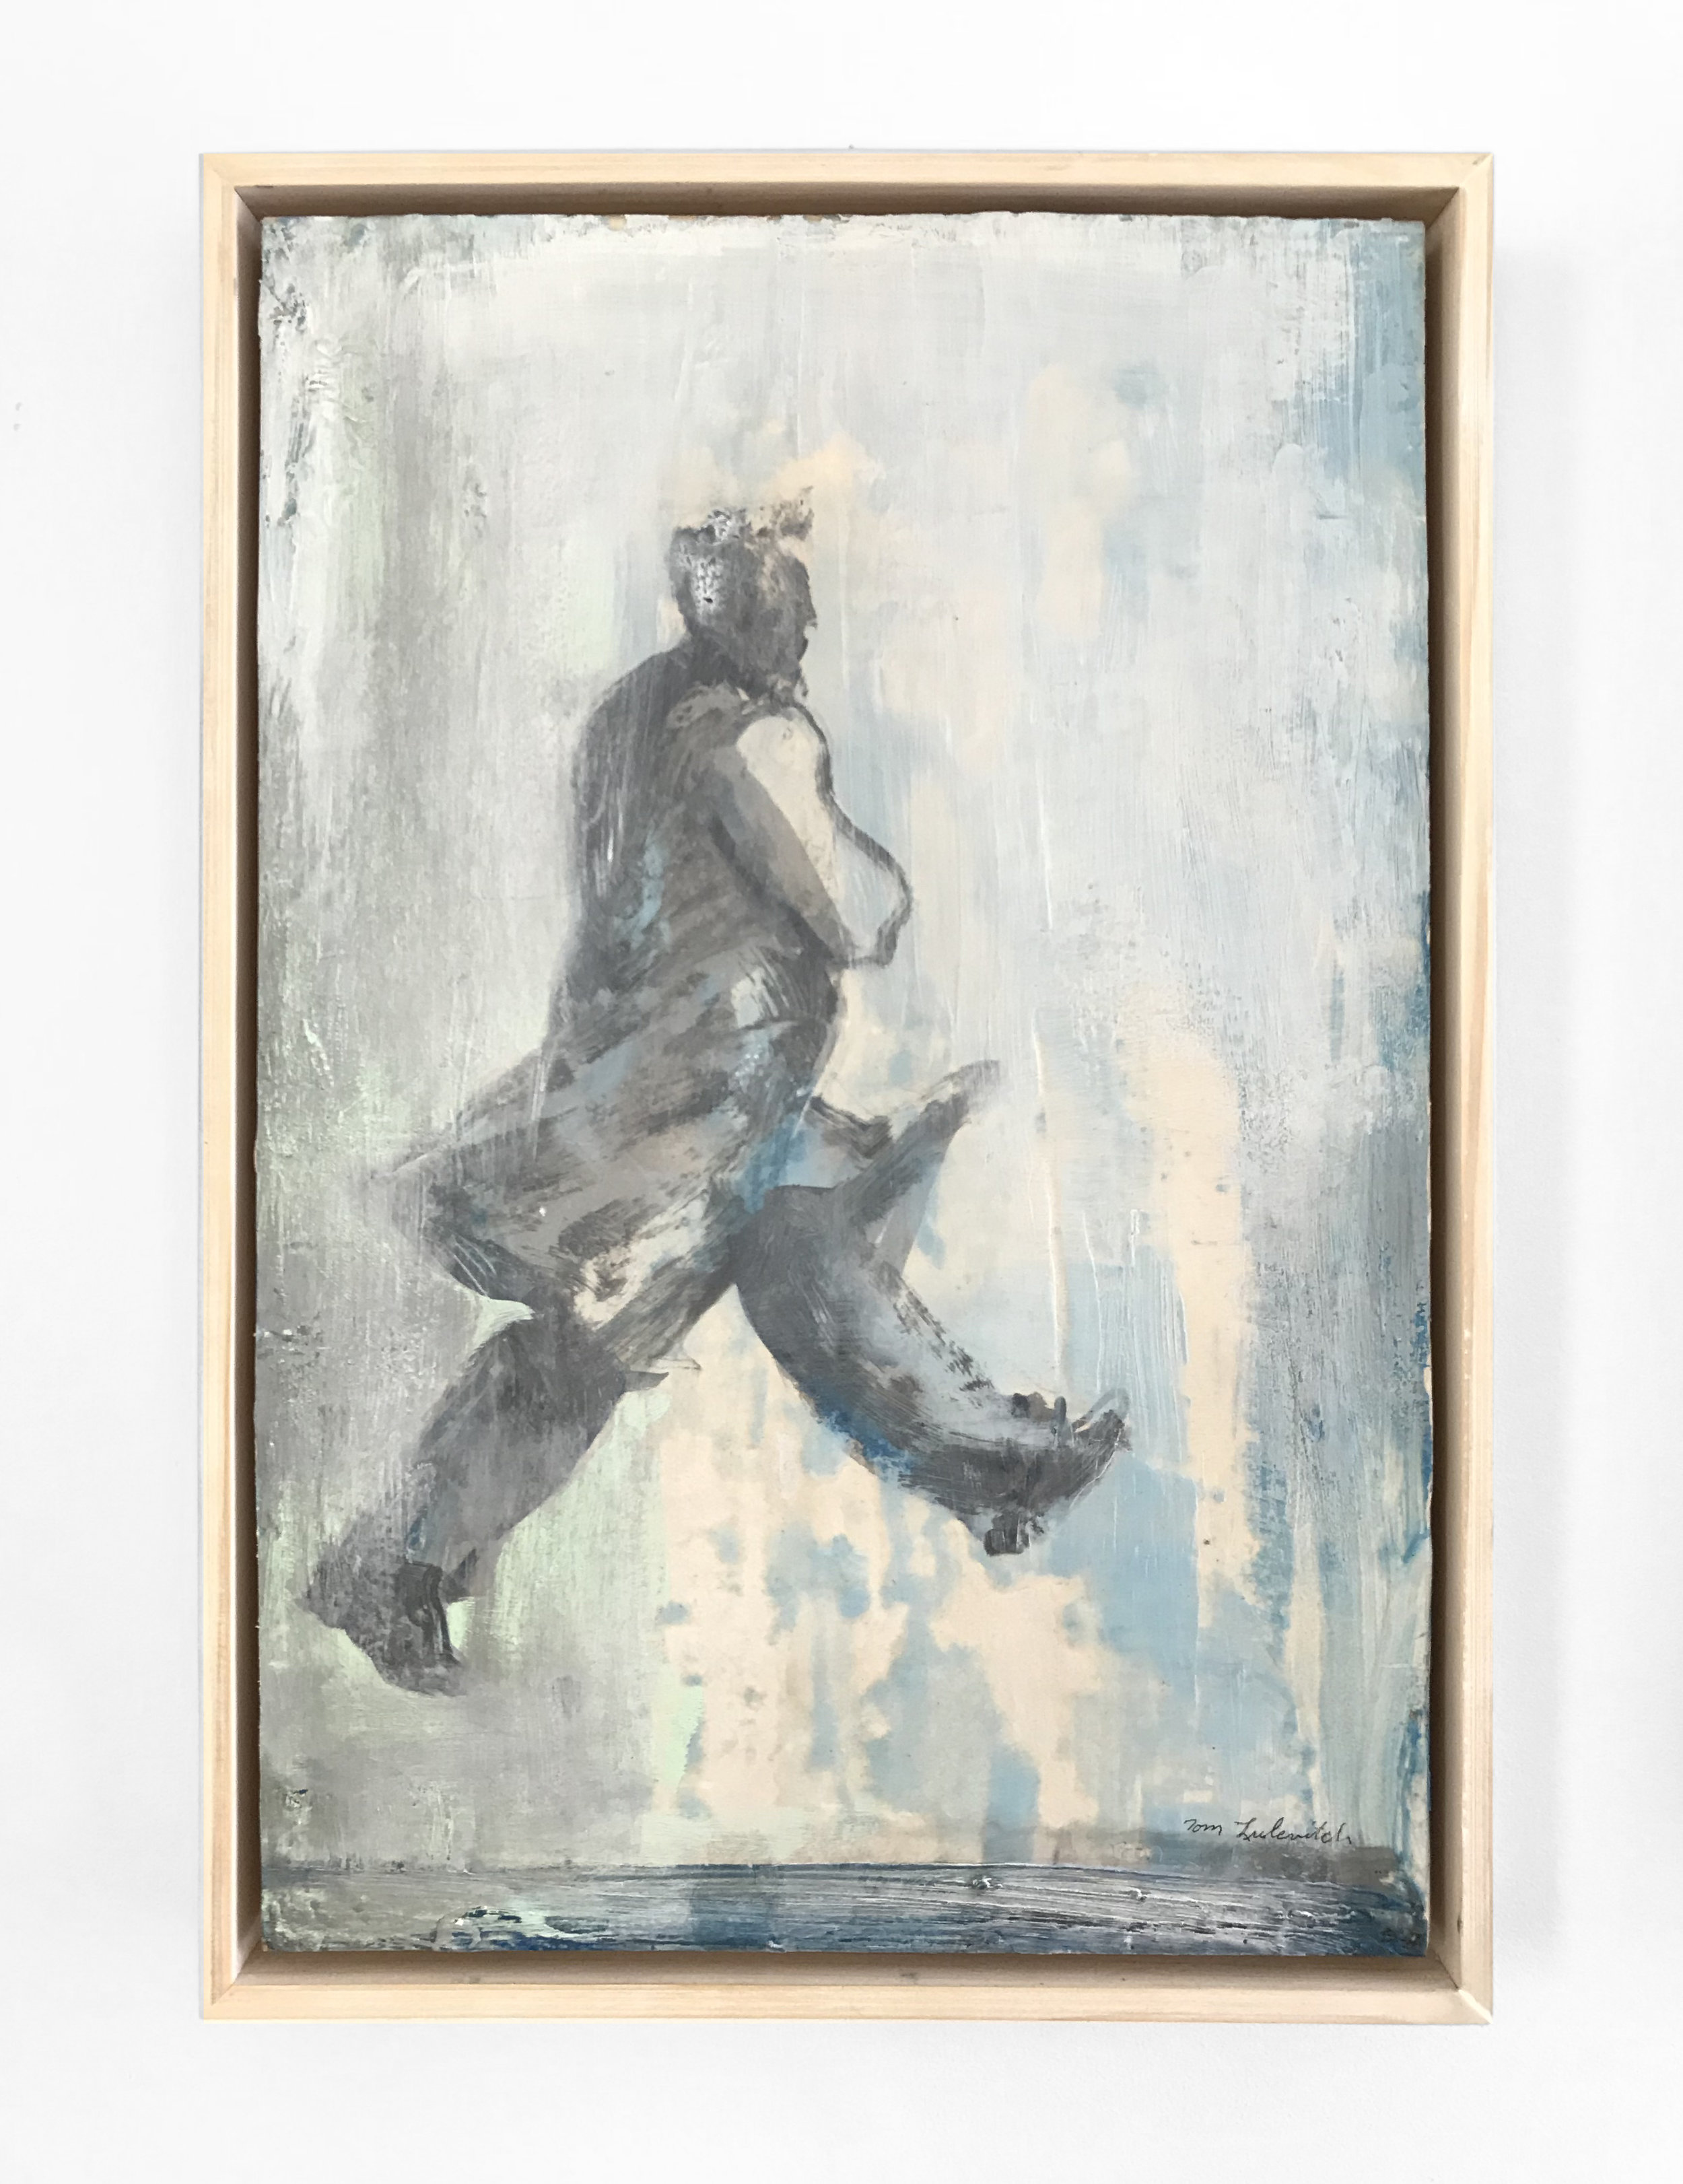 - Tom LulevichUntitled2018Oil & encaustic on wood panel, framed18 x 12 inches